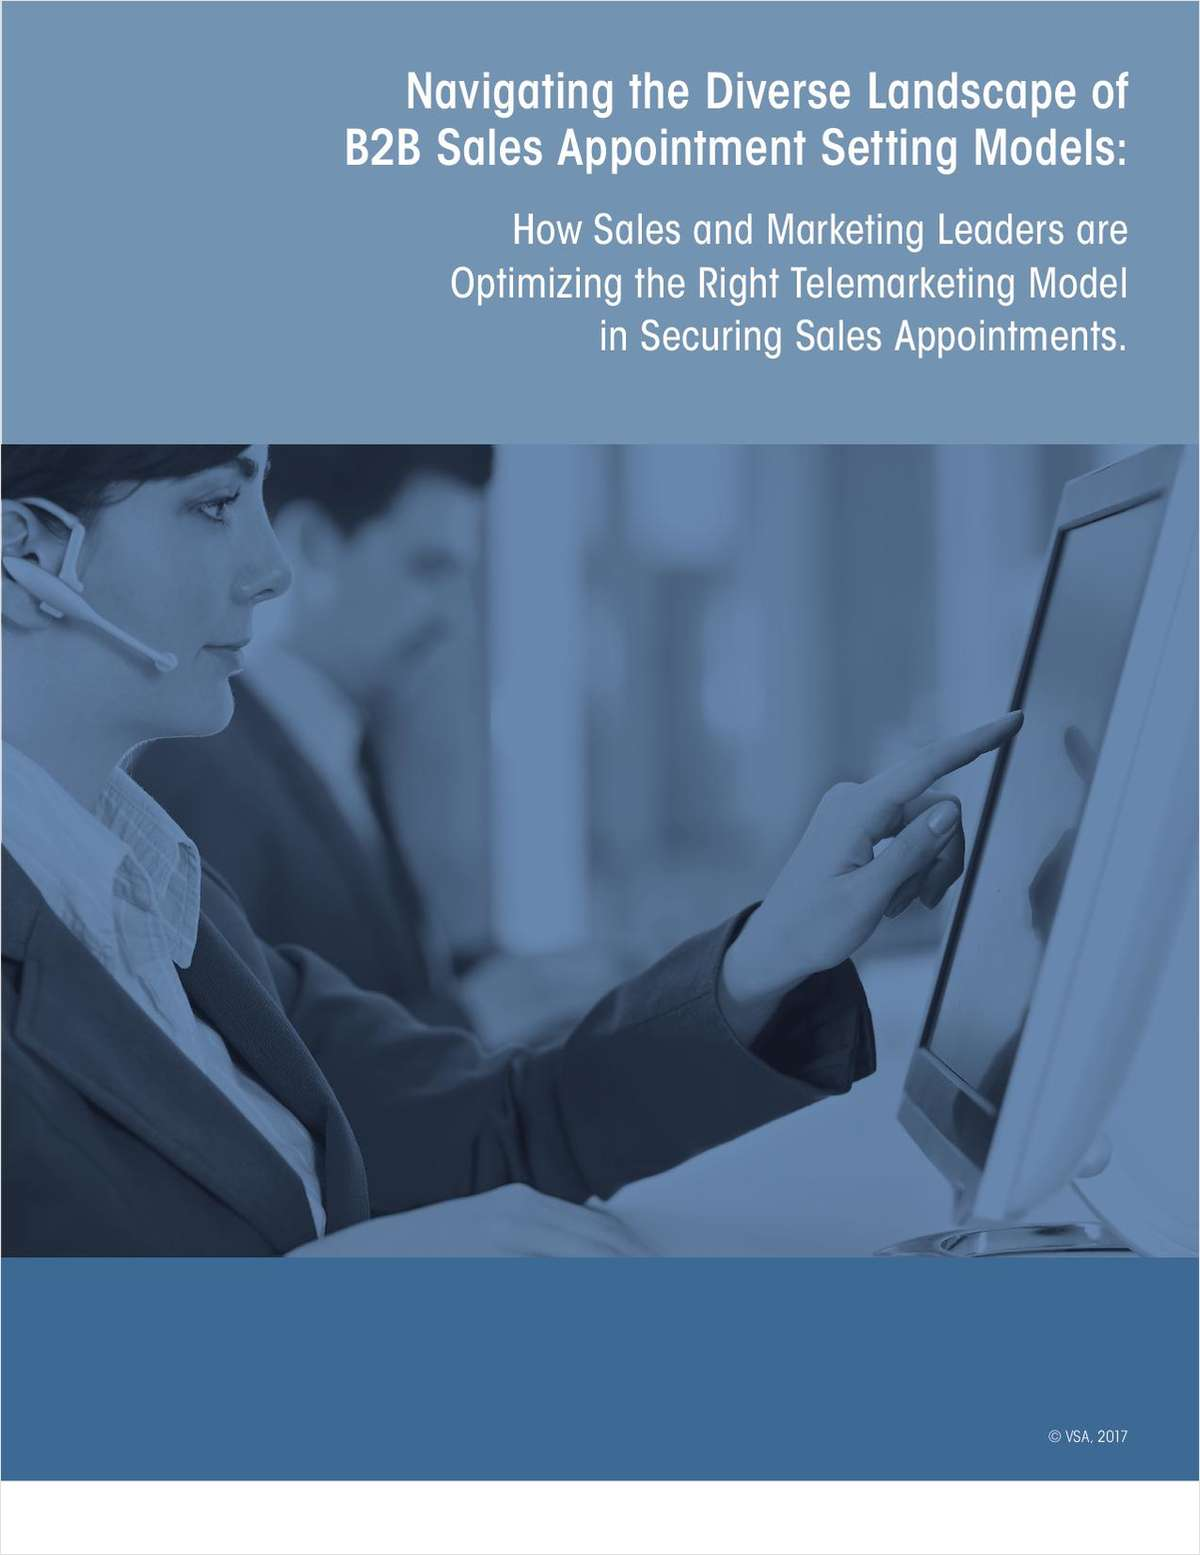 Navigating the Diverse Landscape of B2B Sales Appointment Setting Models